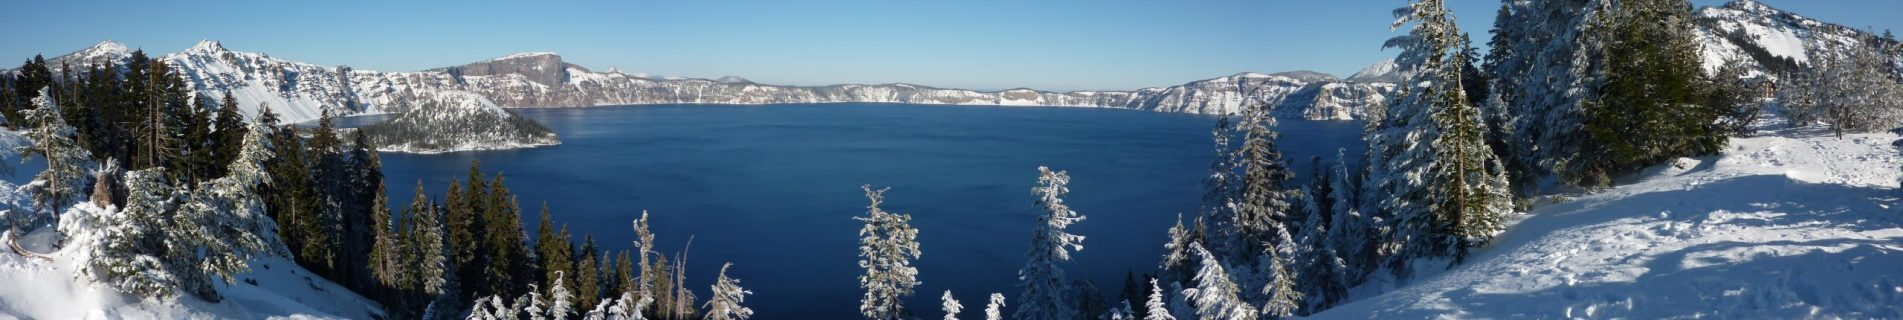 cropped-PanoramCraterLake-scaled-1.jpg